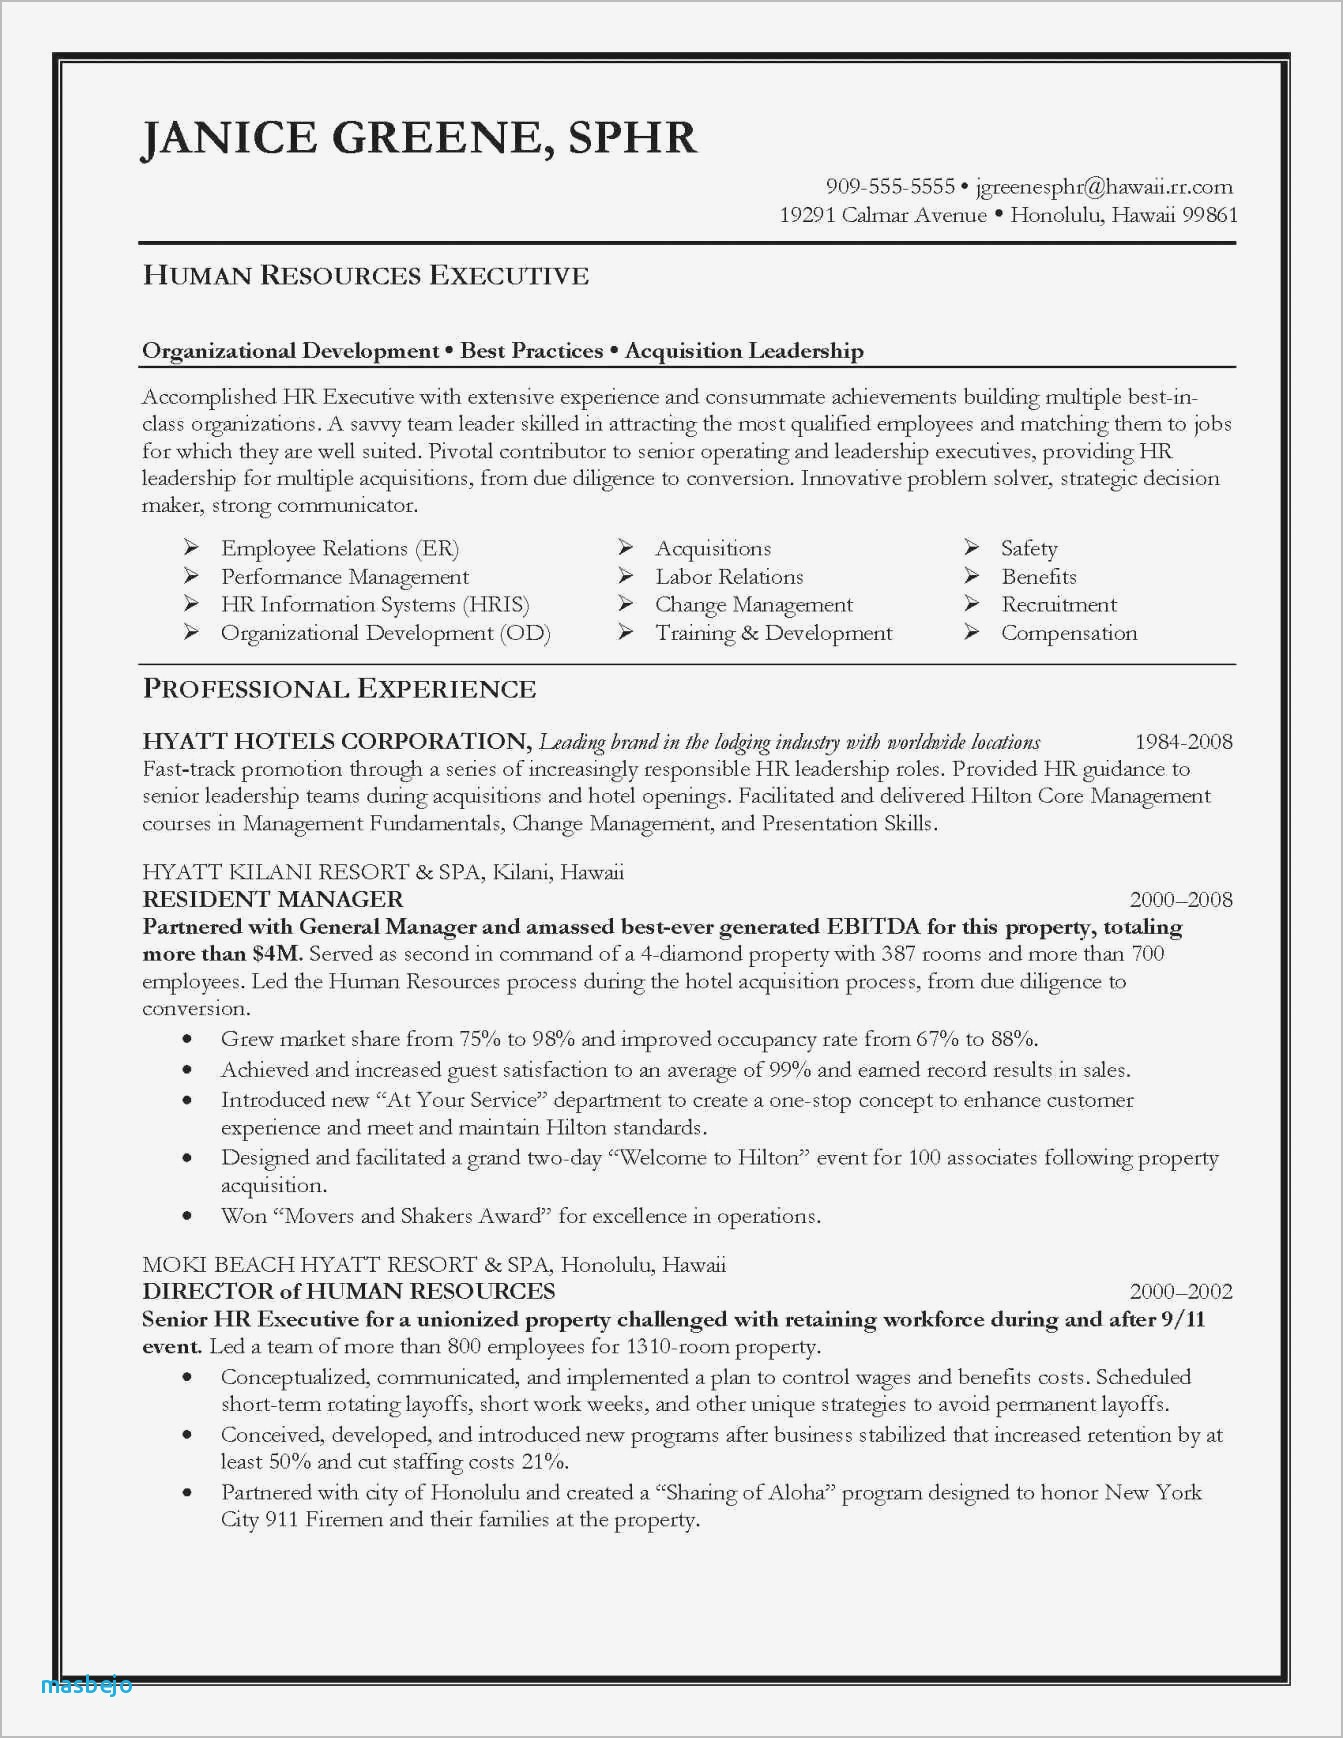 Human Resources Resume Summary - Professional Summary Resume Examples